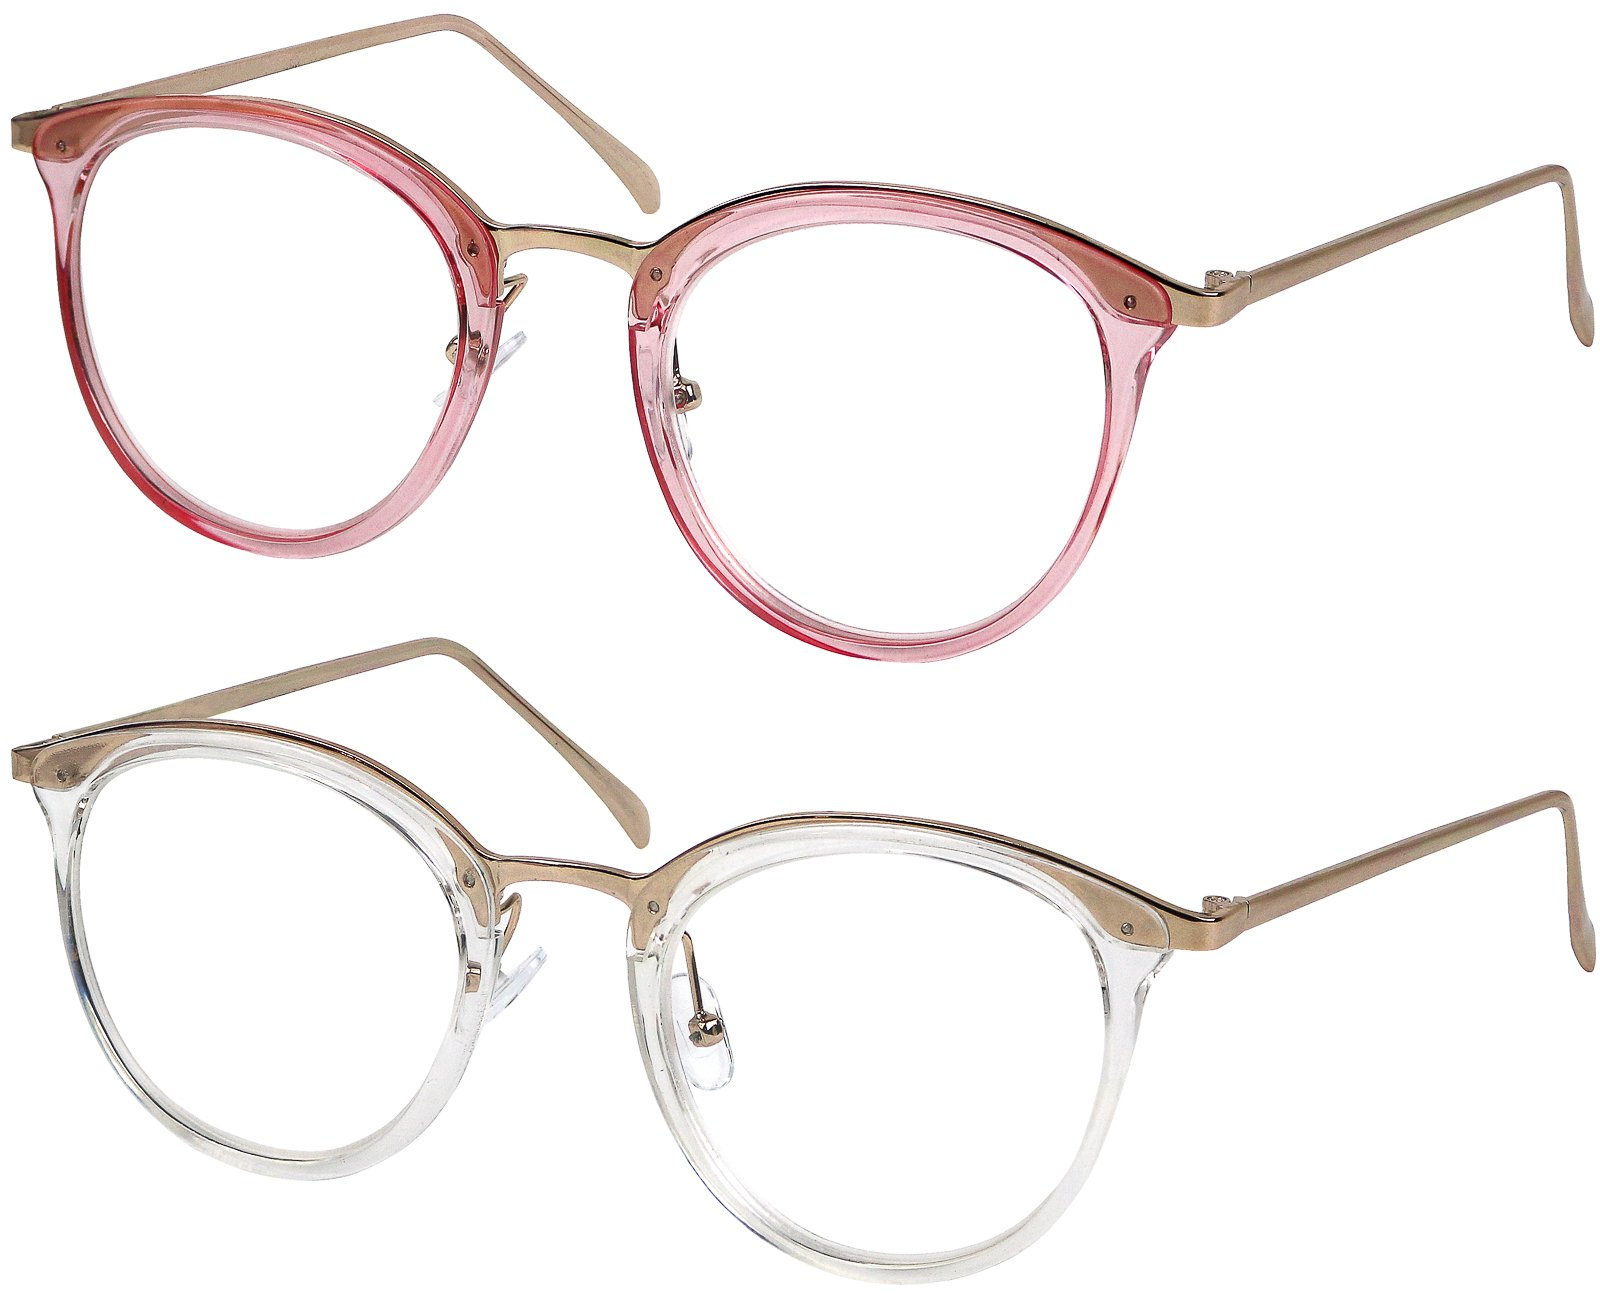 Reading Glasses Set of Pink and Clear Classic Elegant Glasses for Reading for Women +2.75